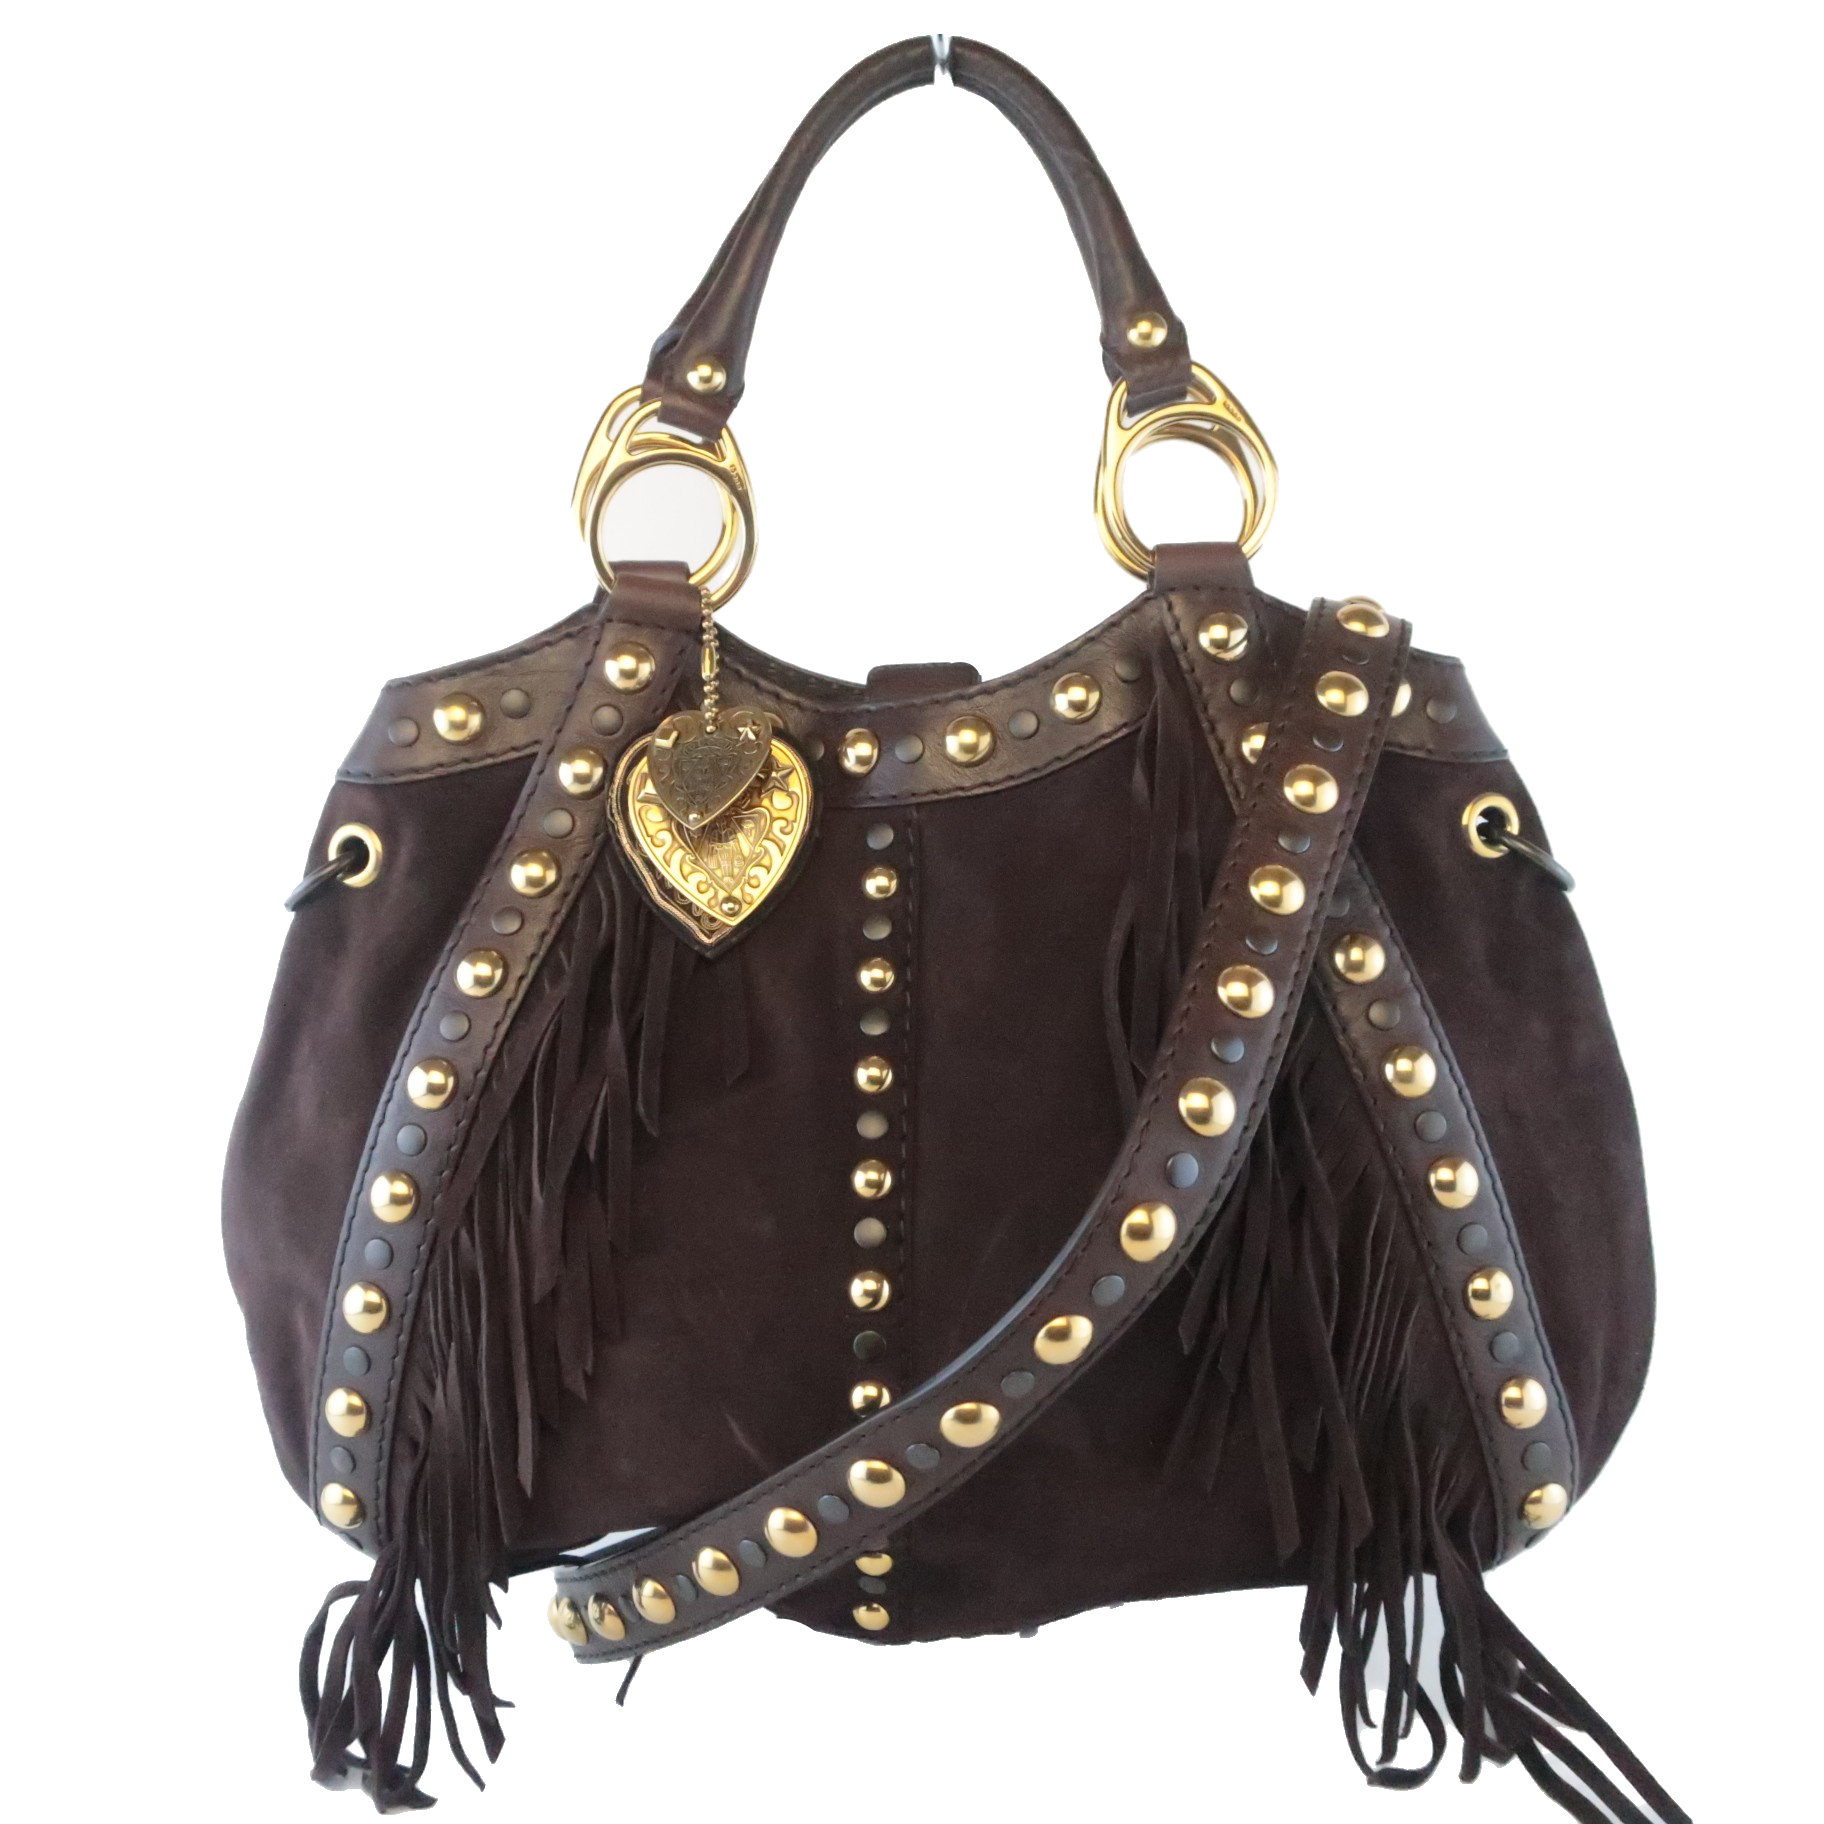 Spring-Summer 2021 Bag Trends: How To Stay Fashionable Shopping Pre-Owned Gucci Baboushka Tote